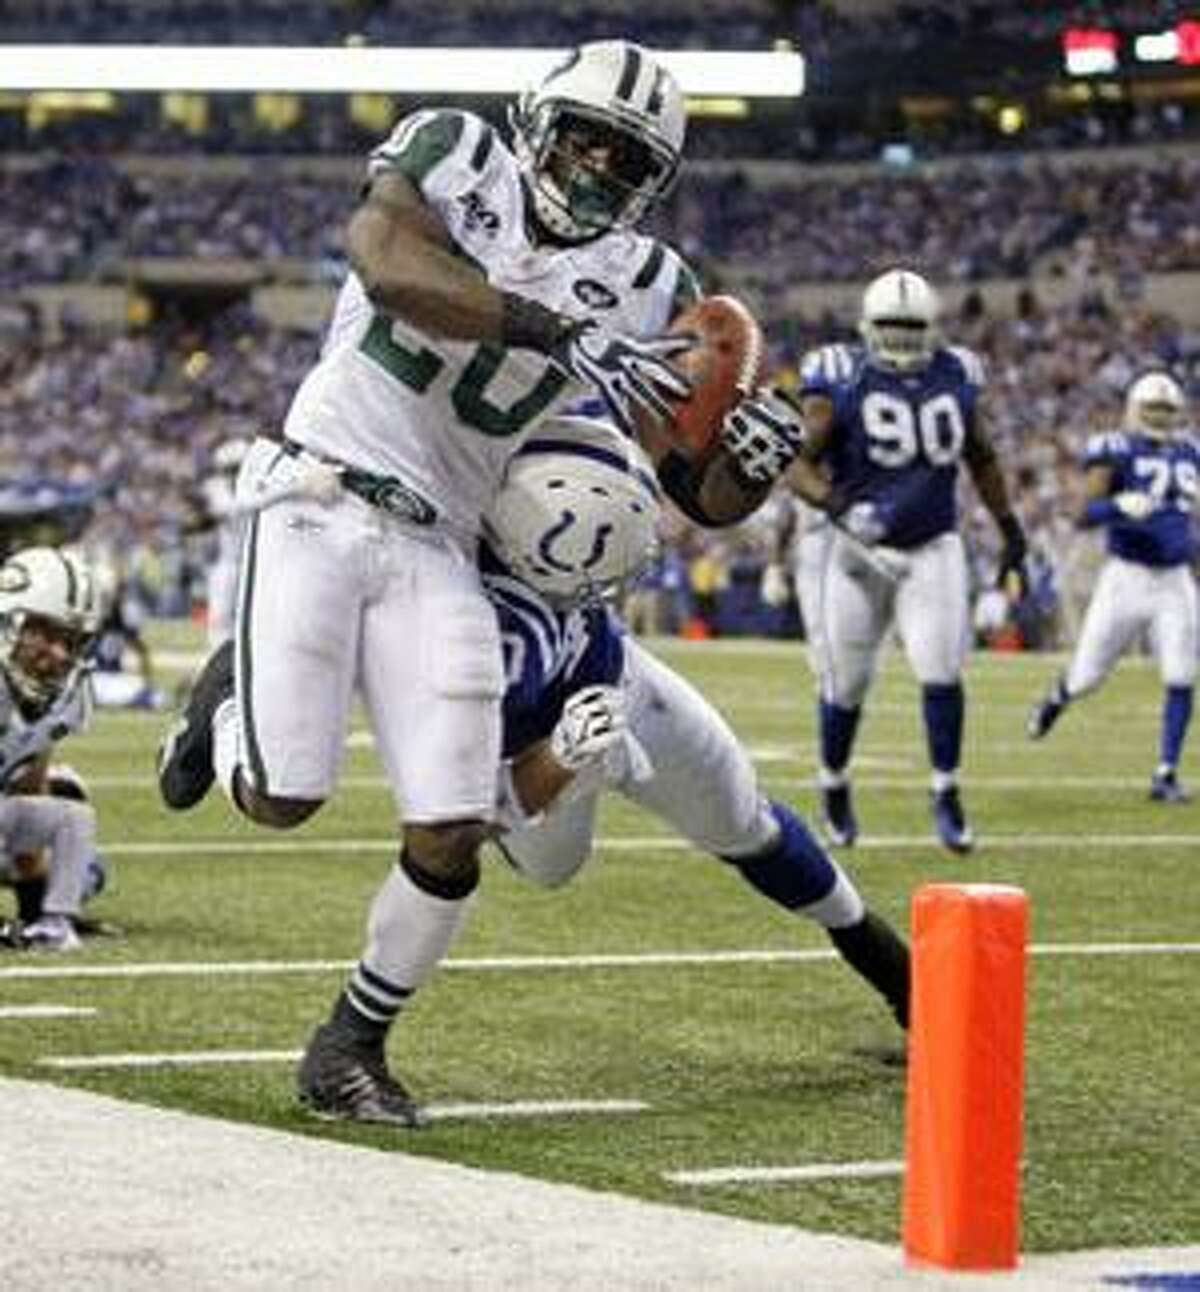 New York Jets running back Thomas Jones, left, is pushed out of bounds by Indianapolis Colts cornerback Jamie Silva during the fourth quarter Sunday in Indianapolis. The Jets defeated the Colts 29-15.